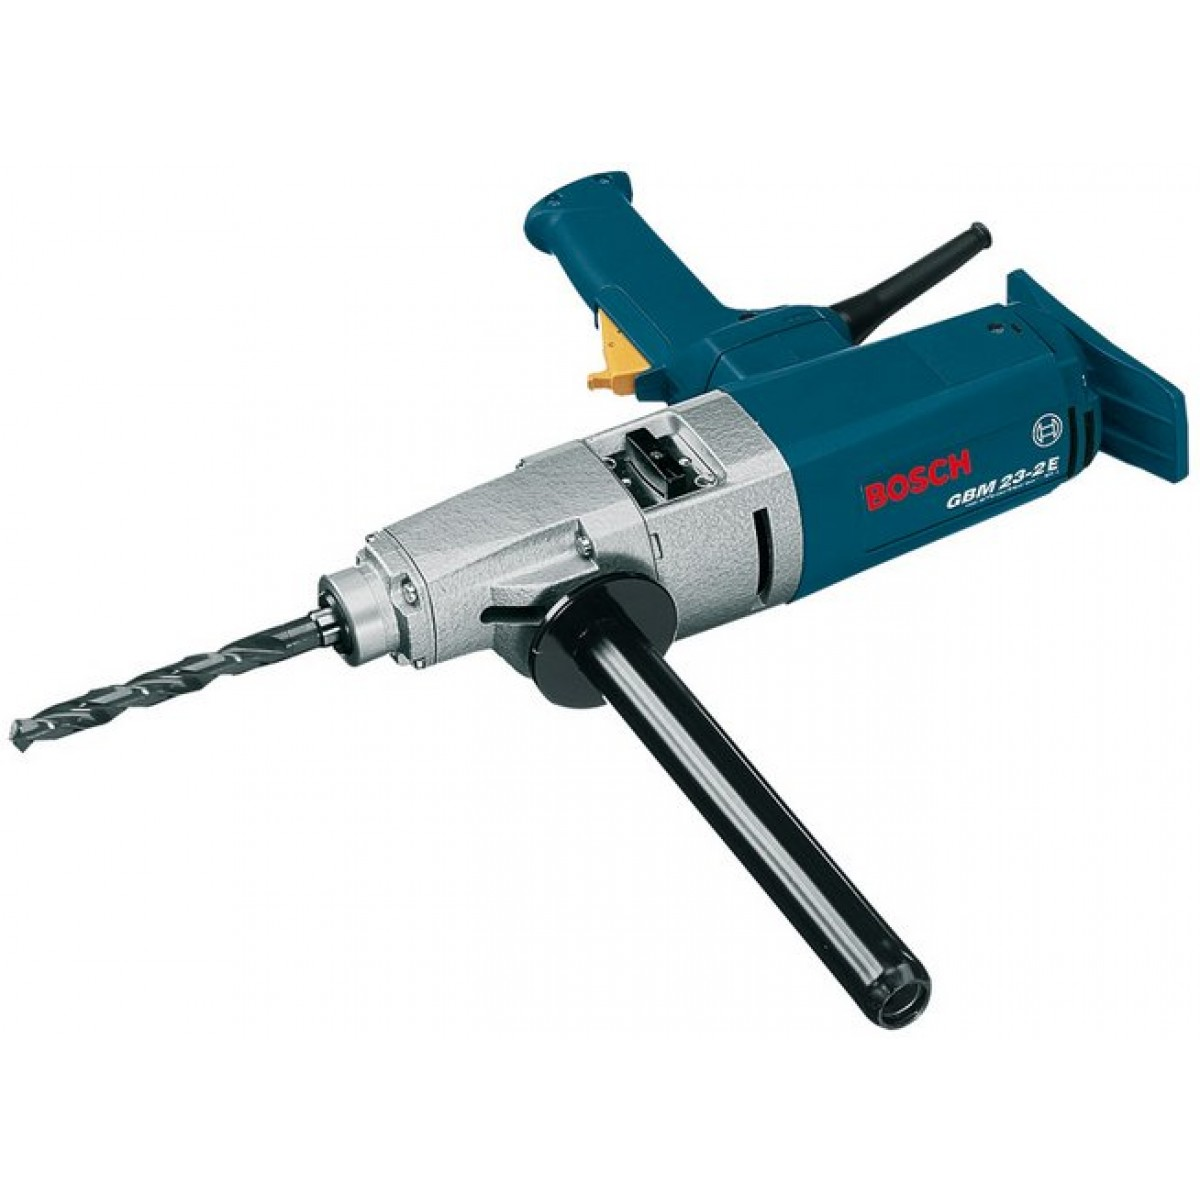 bosch hand drill gbm 23 2e drilling impact drilling. Black Bedroom Furniture Sets. Home Design Ideas